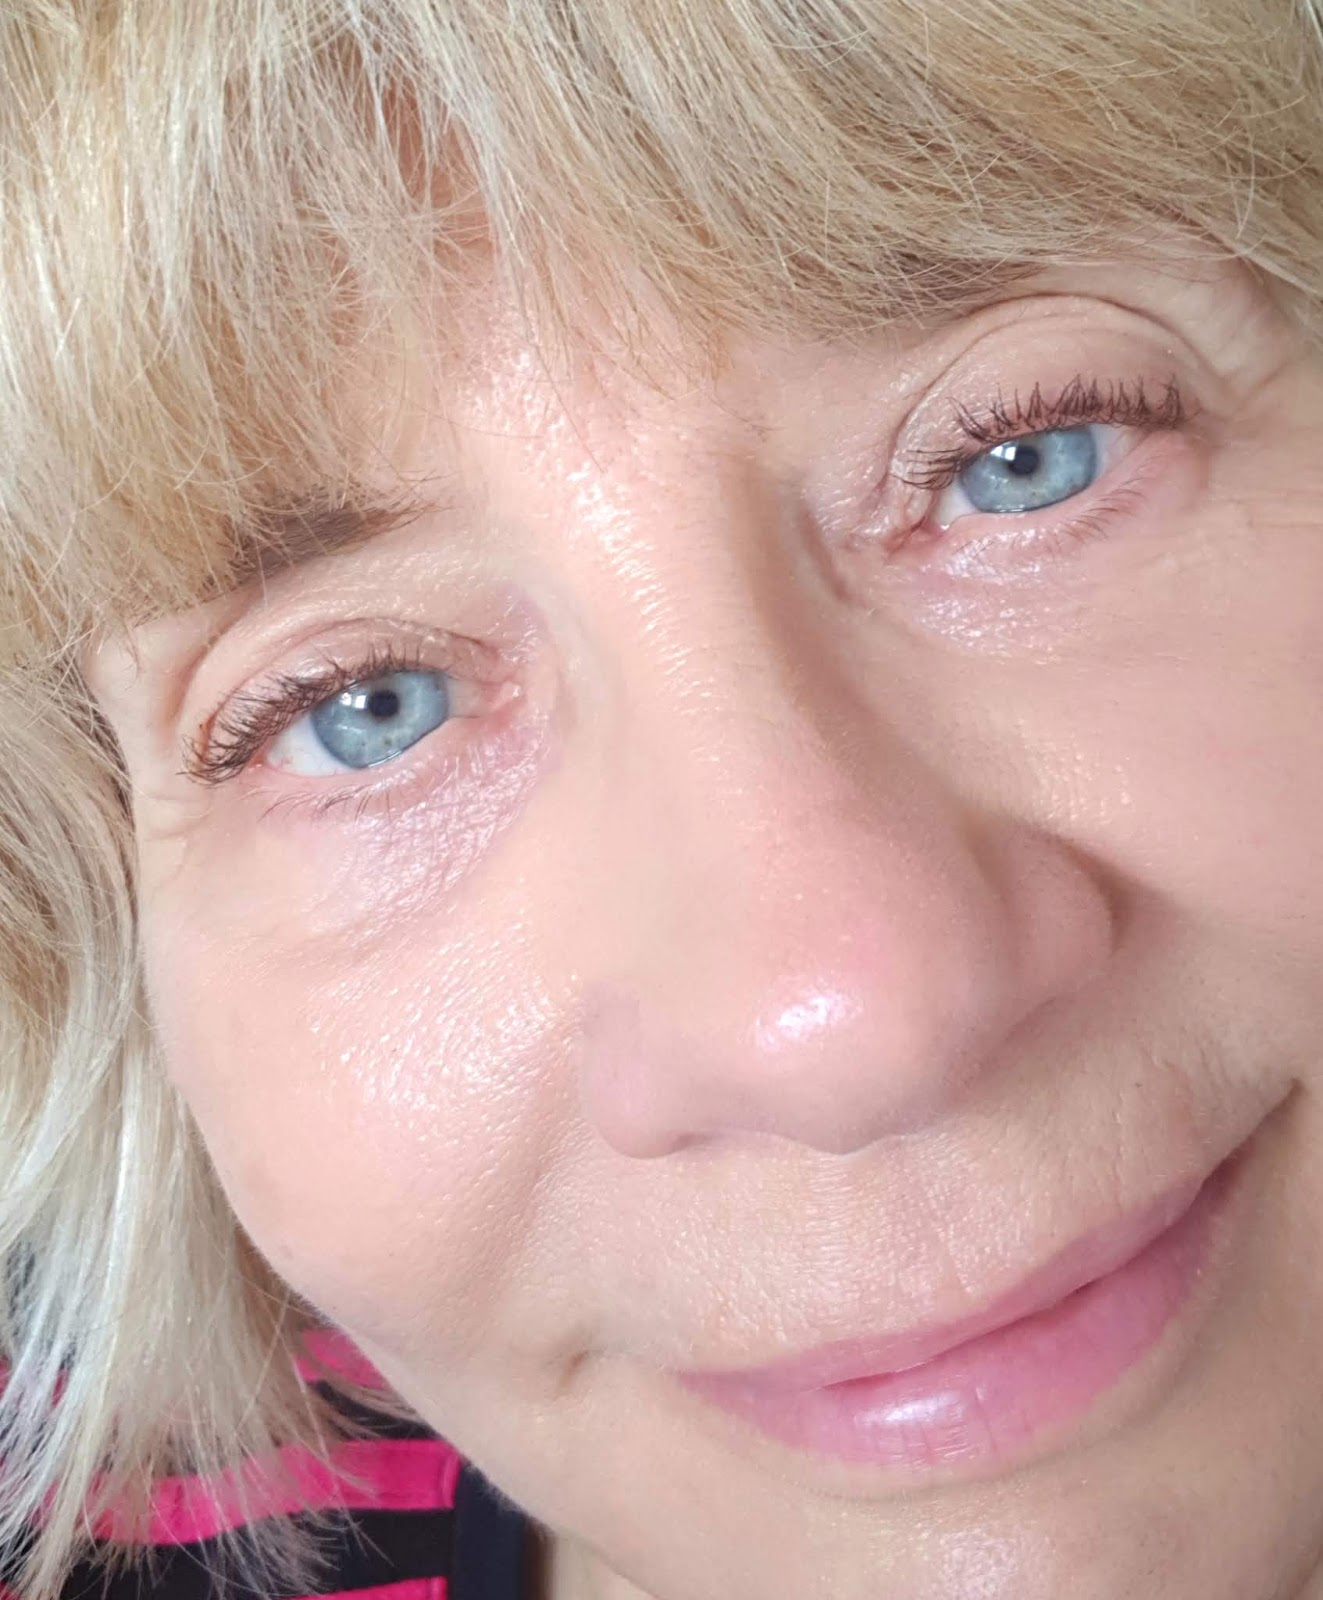 Over 45s blogger Gail Hanlon in a close-up to show her lashes after application of Fairydrops Scandal Queen waterproof mascara